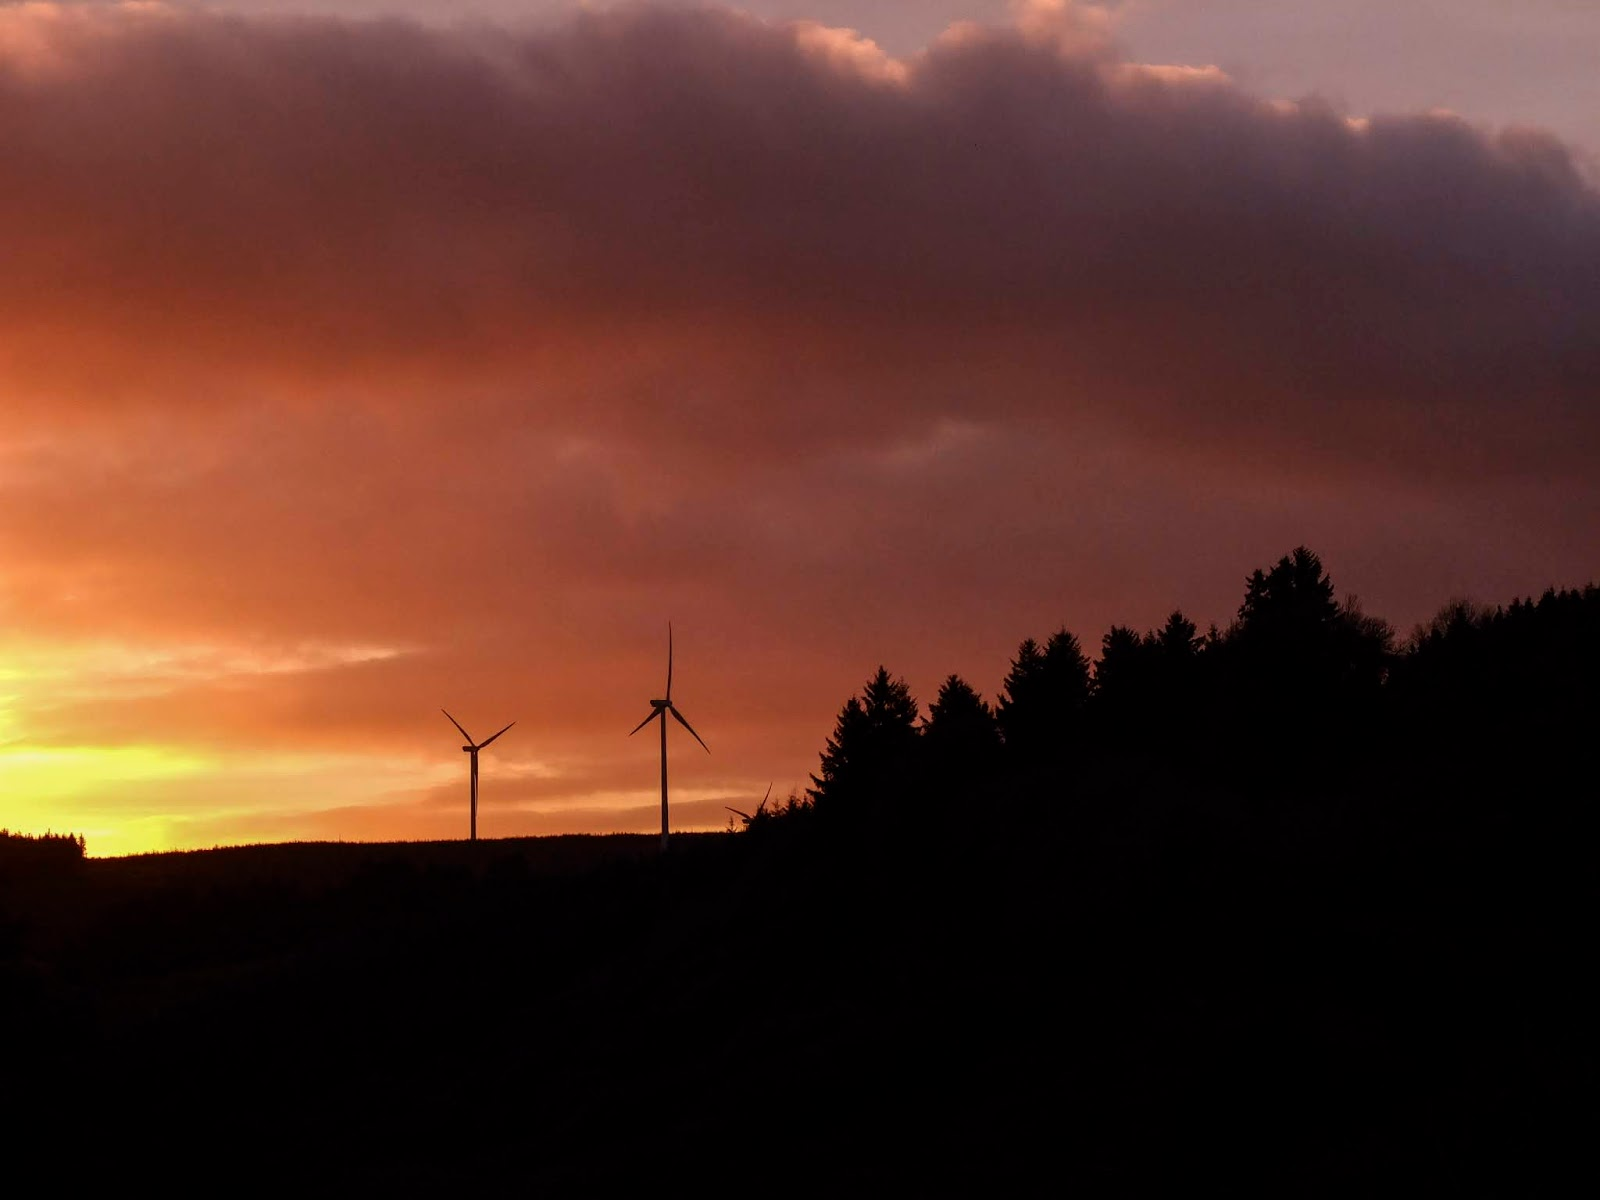 Windmills and a forest with sunset clouds in the Boggeragh Mountains.